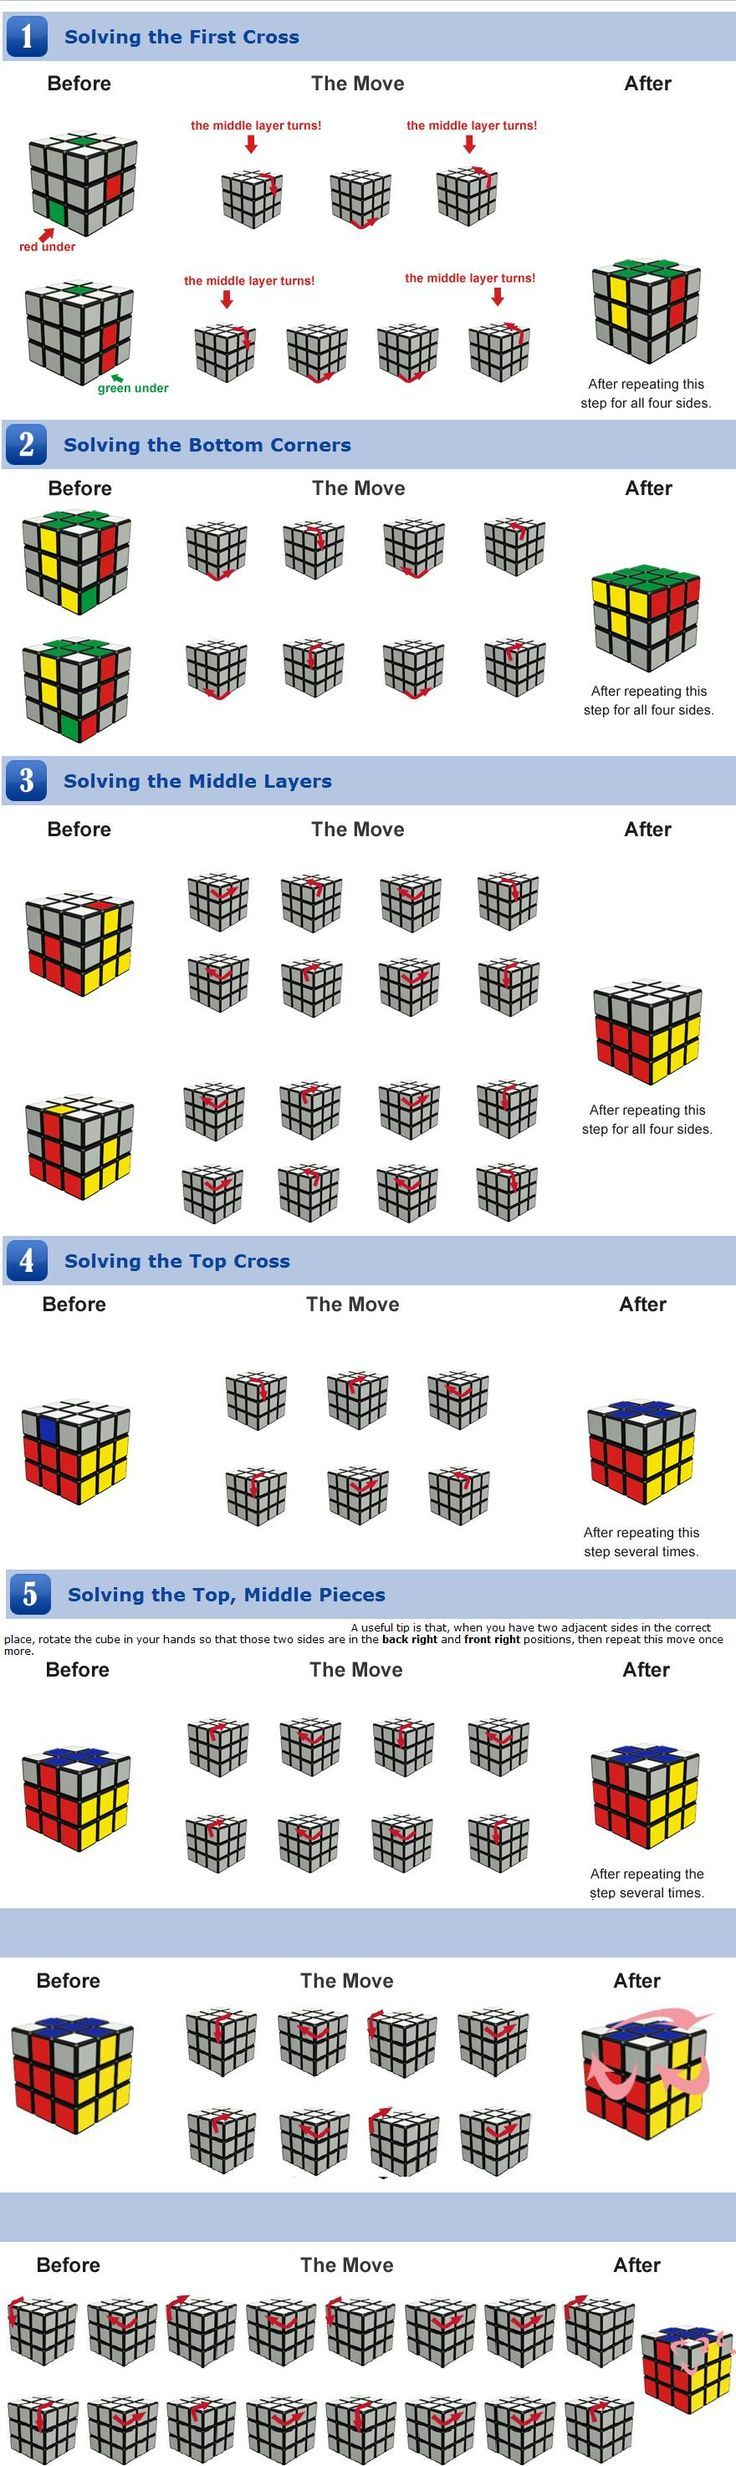 10 Cool Creative Rubiks Cubes To Add To Your Collection (Unbelieveable!) - [http://theendearingdesigner.com/62-unique-rubiks-cubes/]